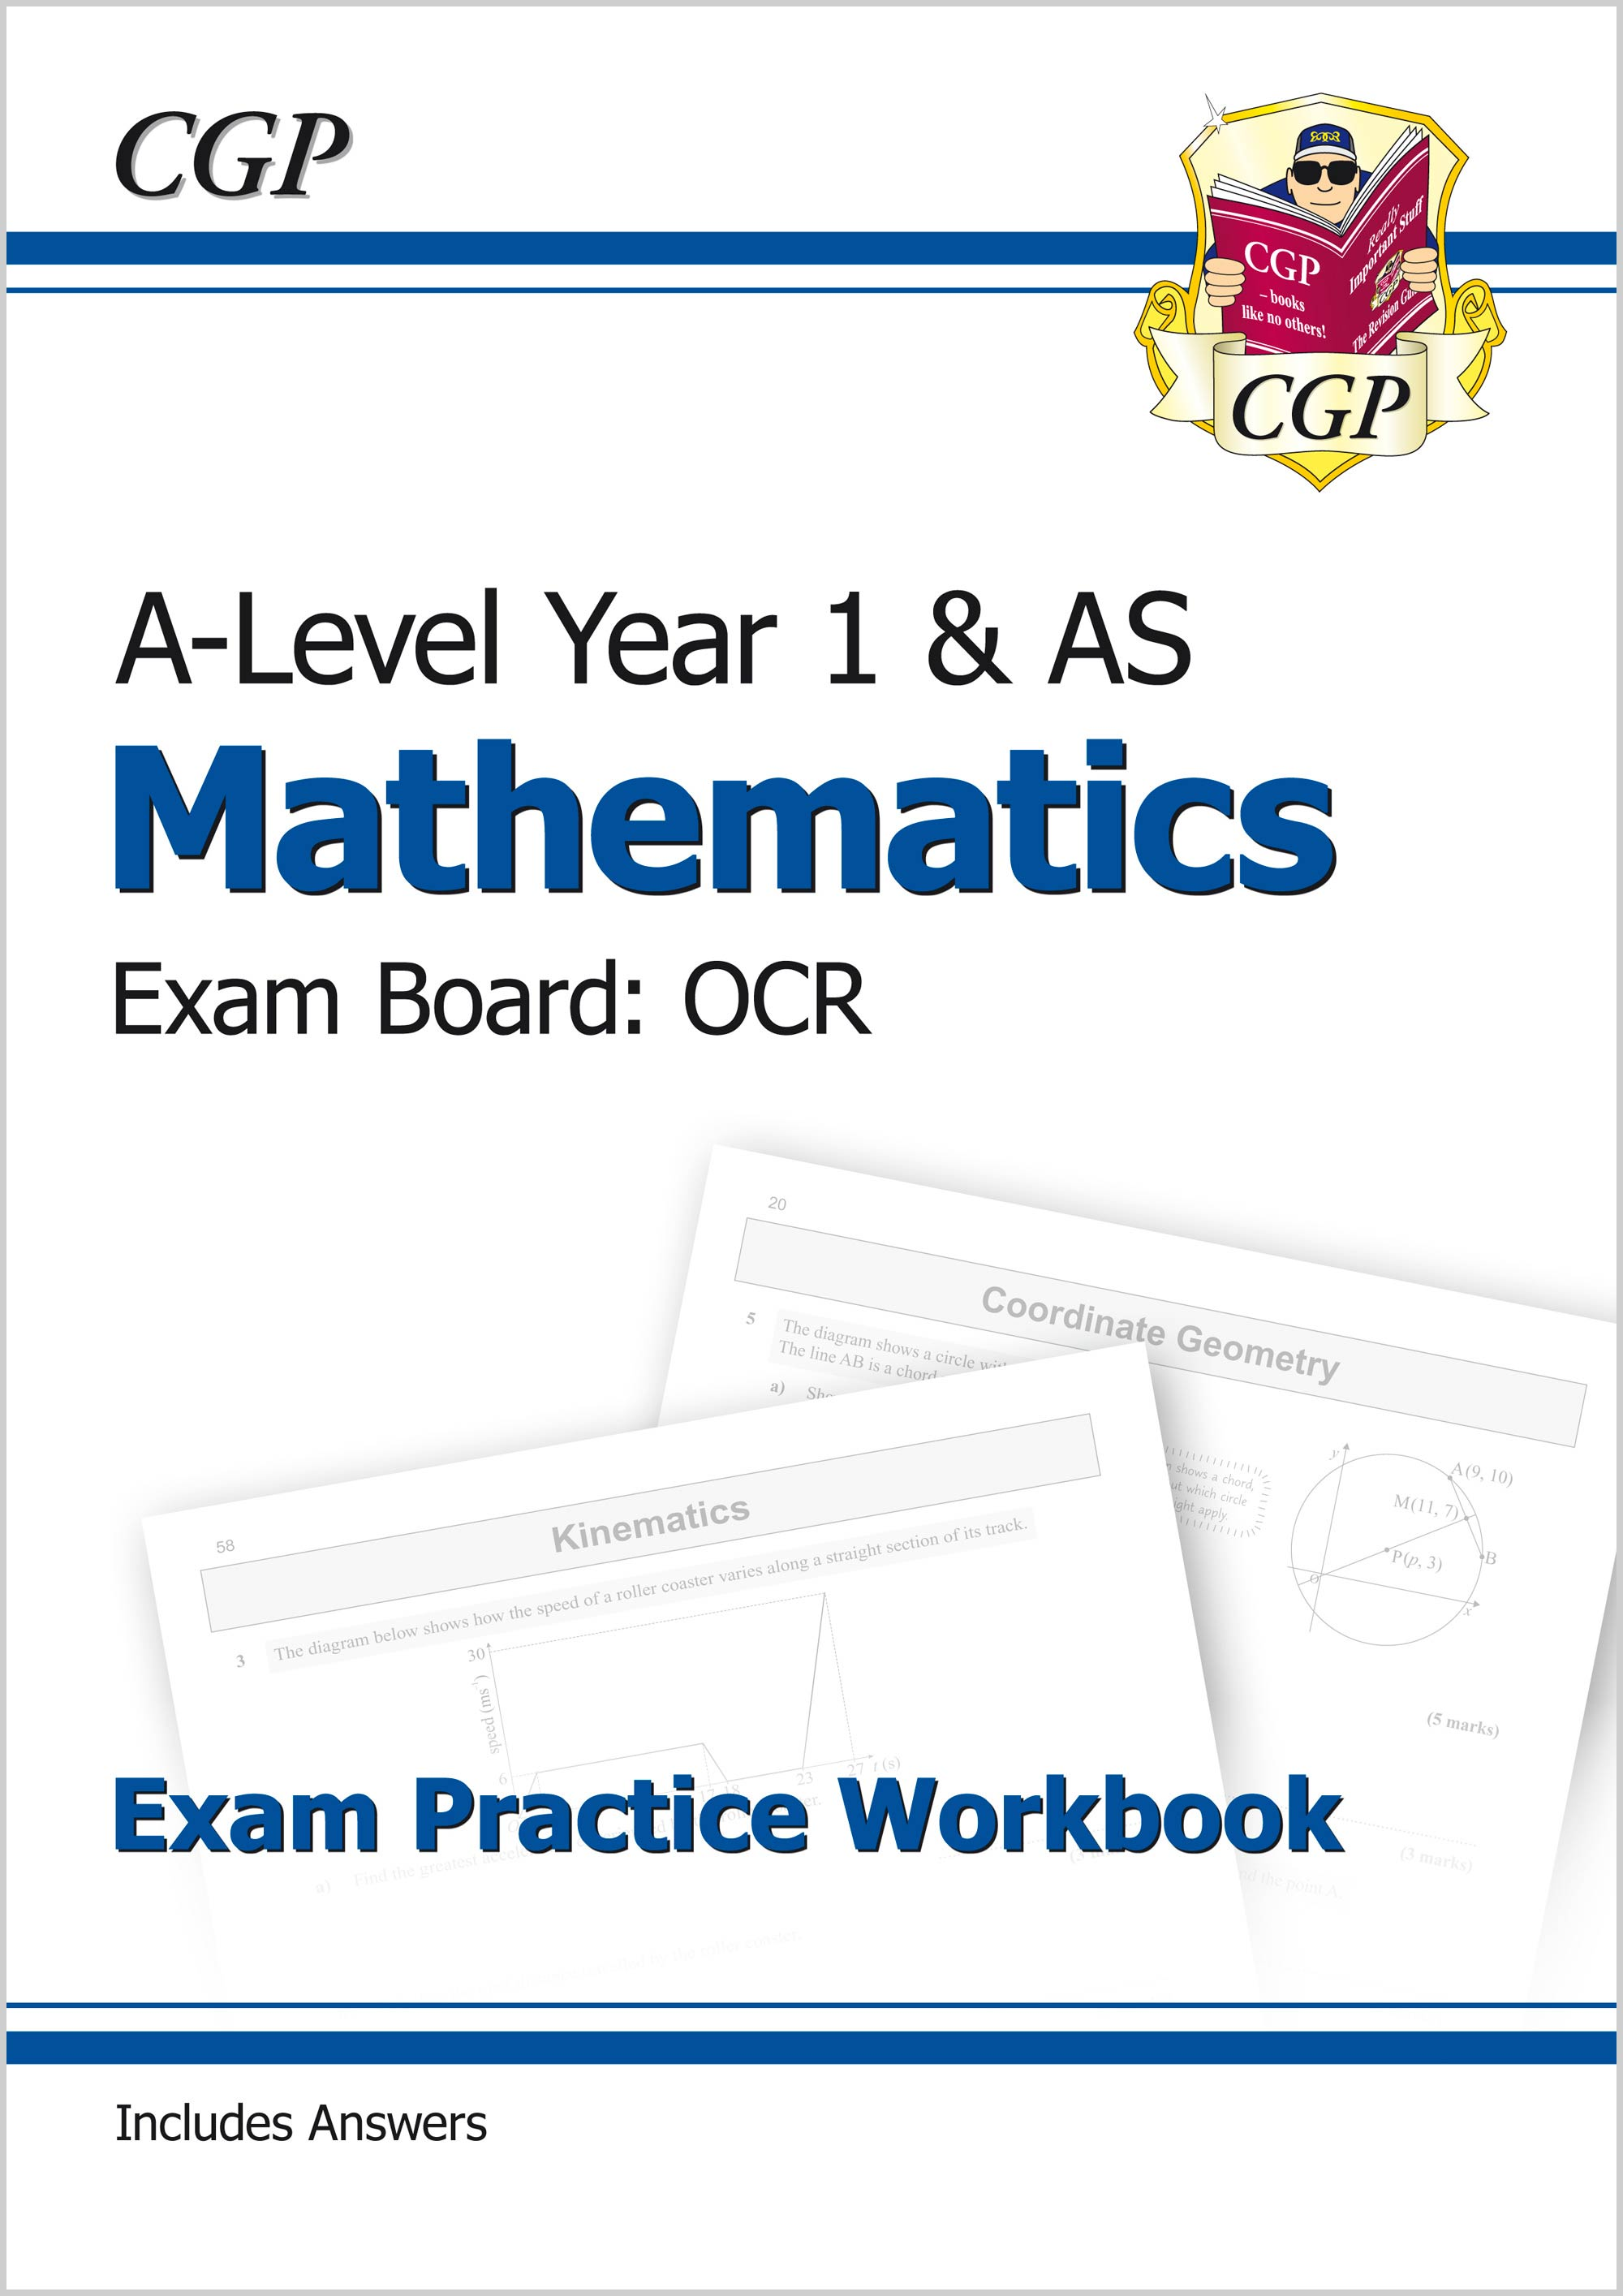 MRQ51 - A-Level Maths for OCR: Year 1 & AS Exam Practice Workbook